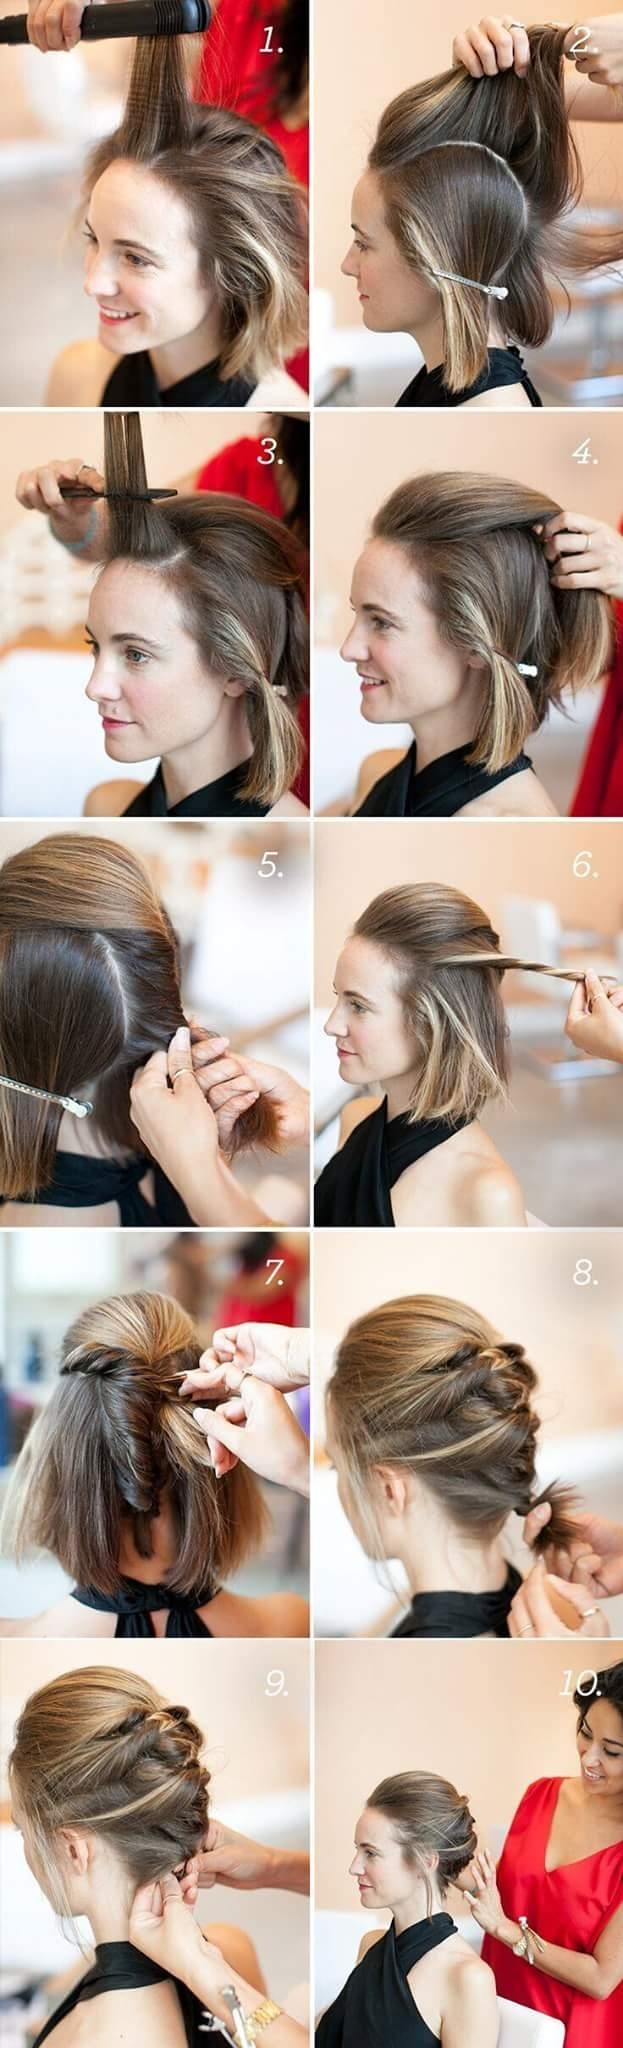 46 Best Ideas For Hairstyles For Thin Hair inside Hairstyle For Thin Hair Step By Step